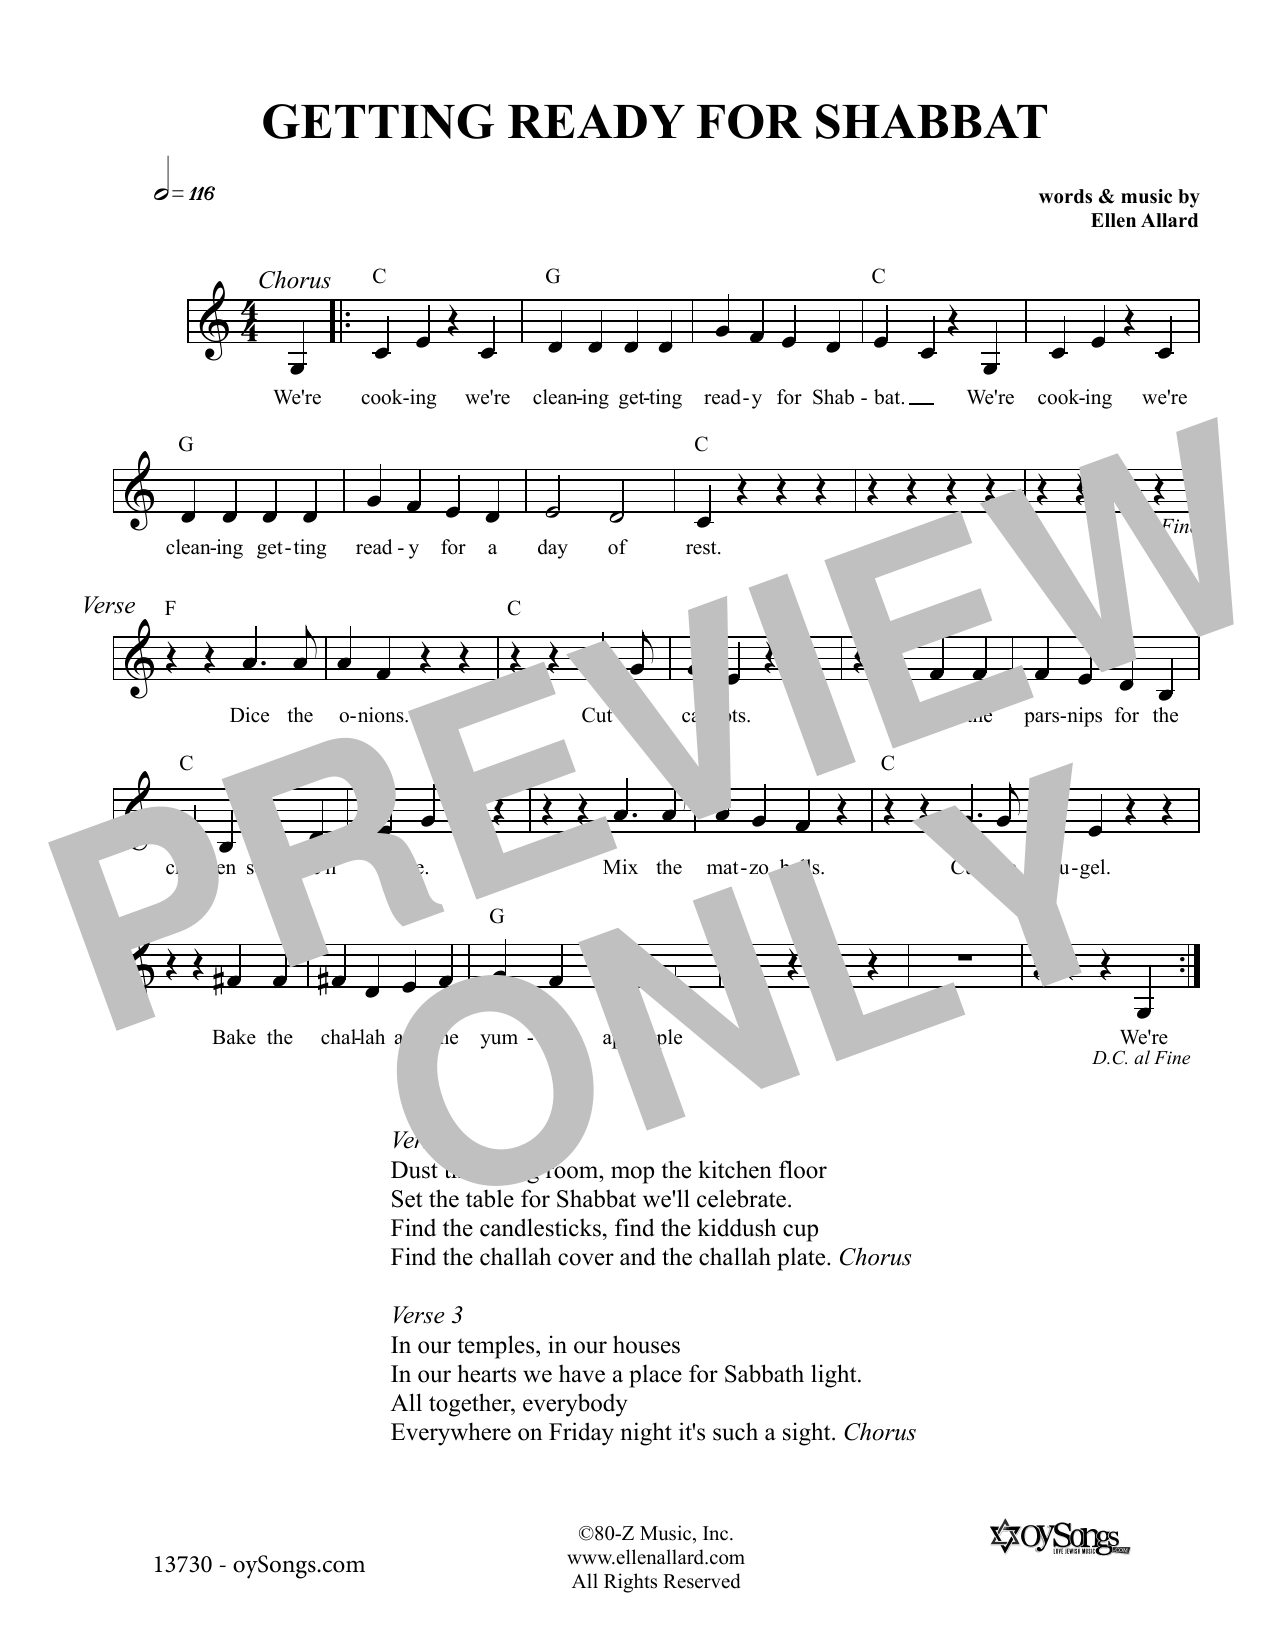 Ellen Allard Getting Ready For Shabbat sheet music notes and chords. Download Printable PDF.